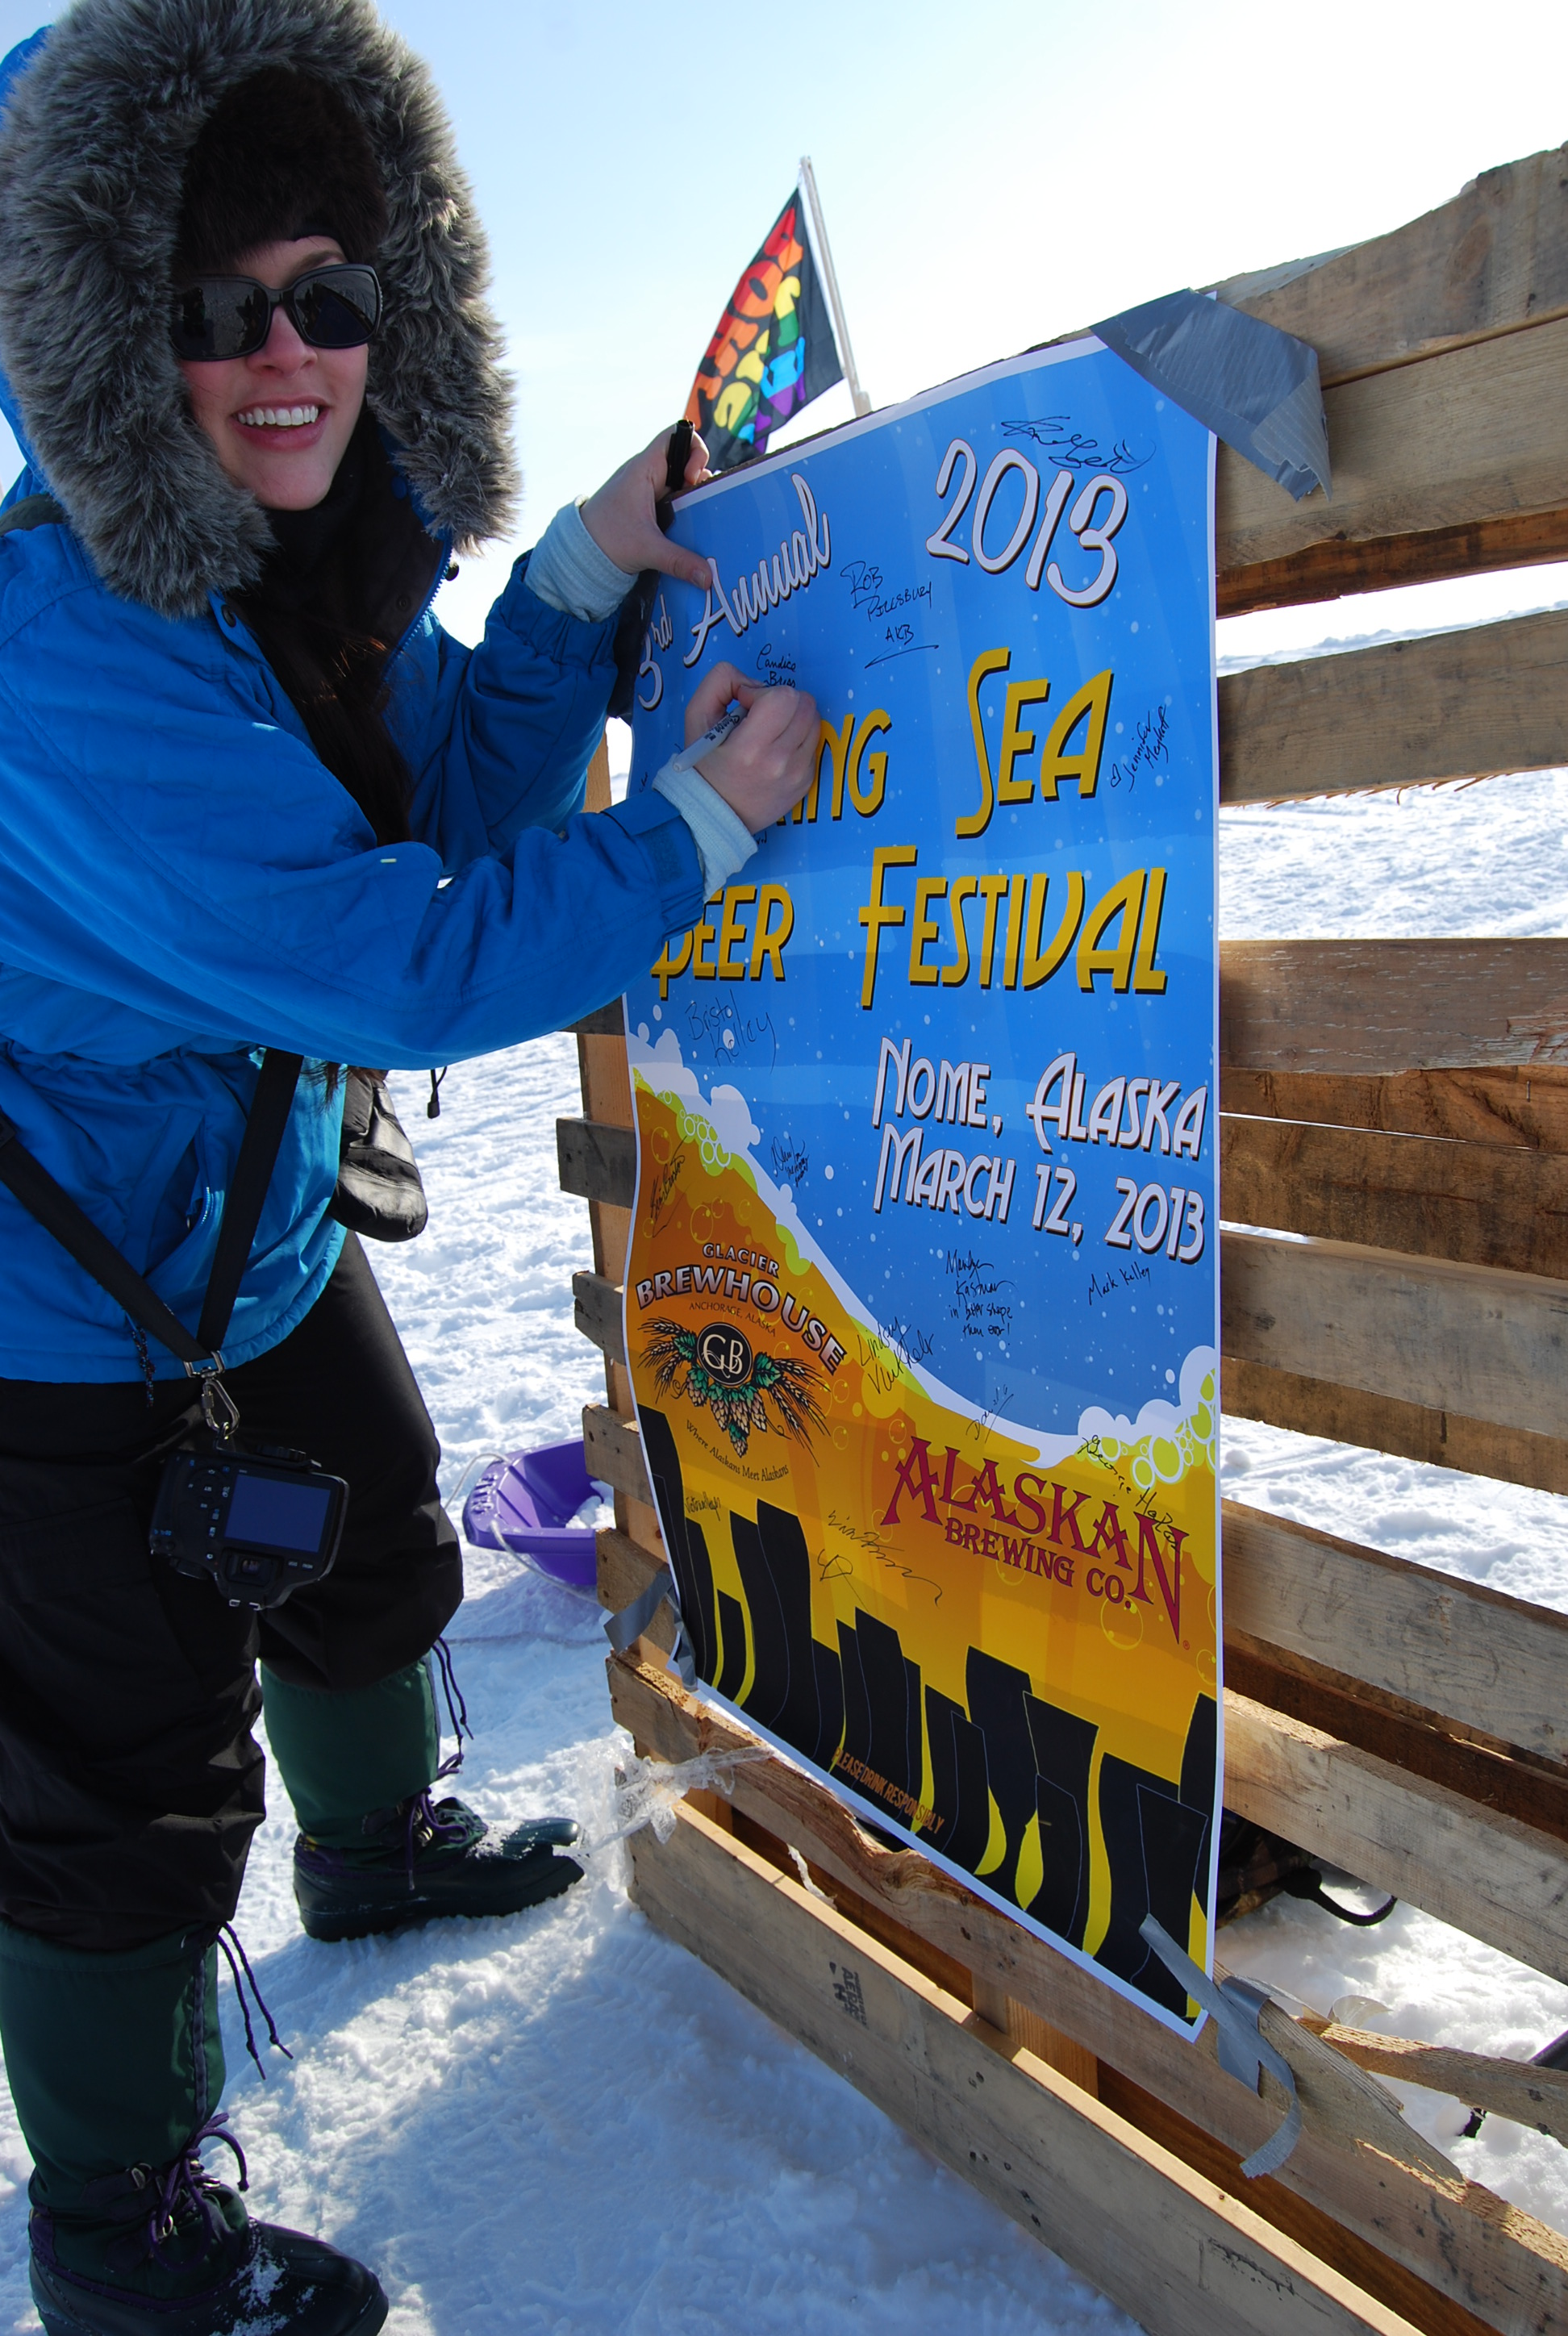 Autographing the brewfest banner.